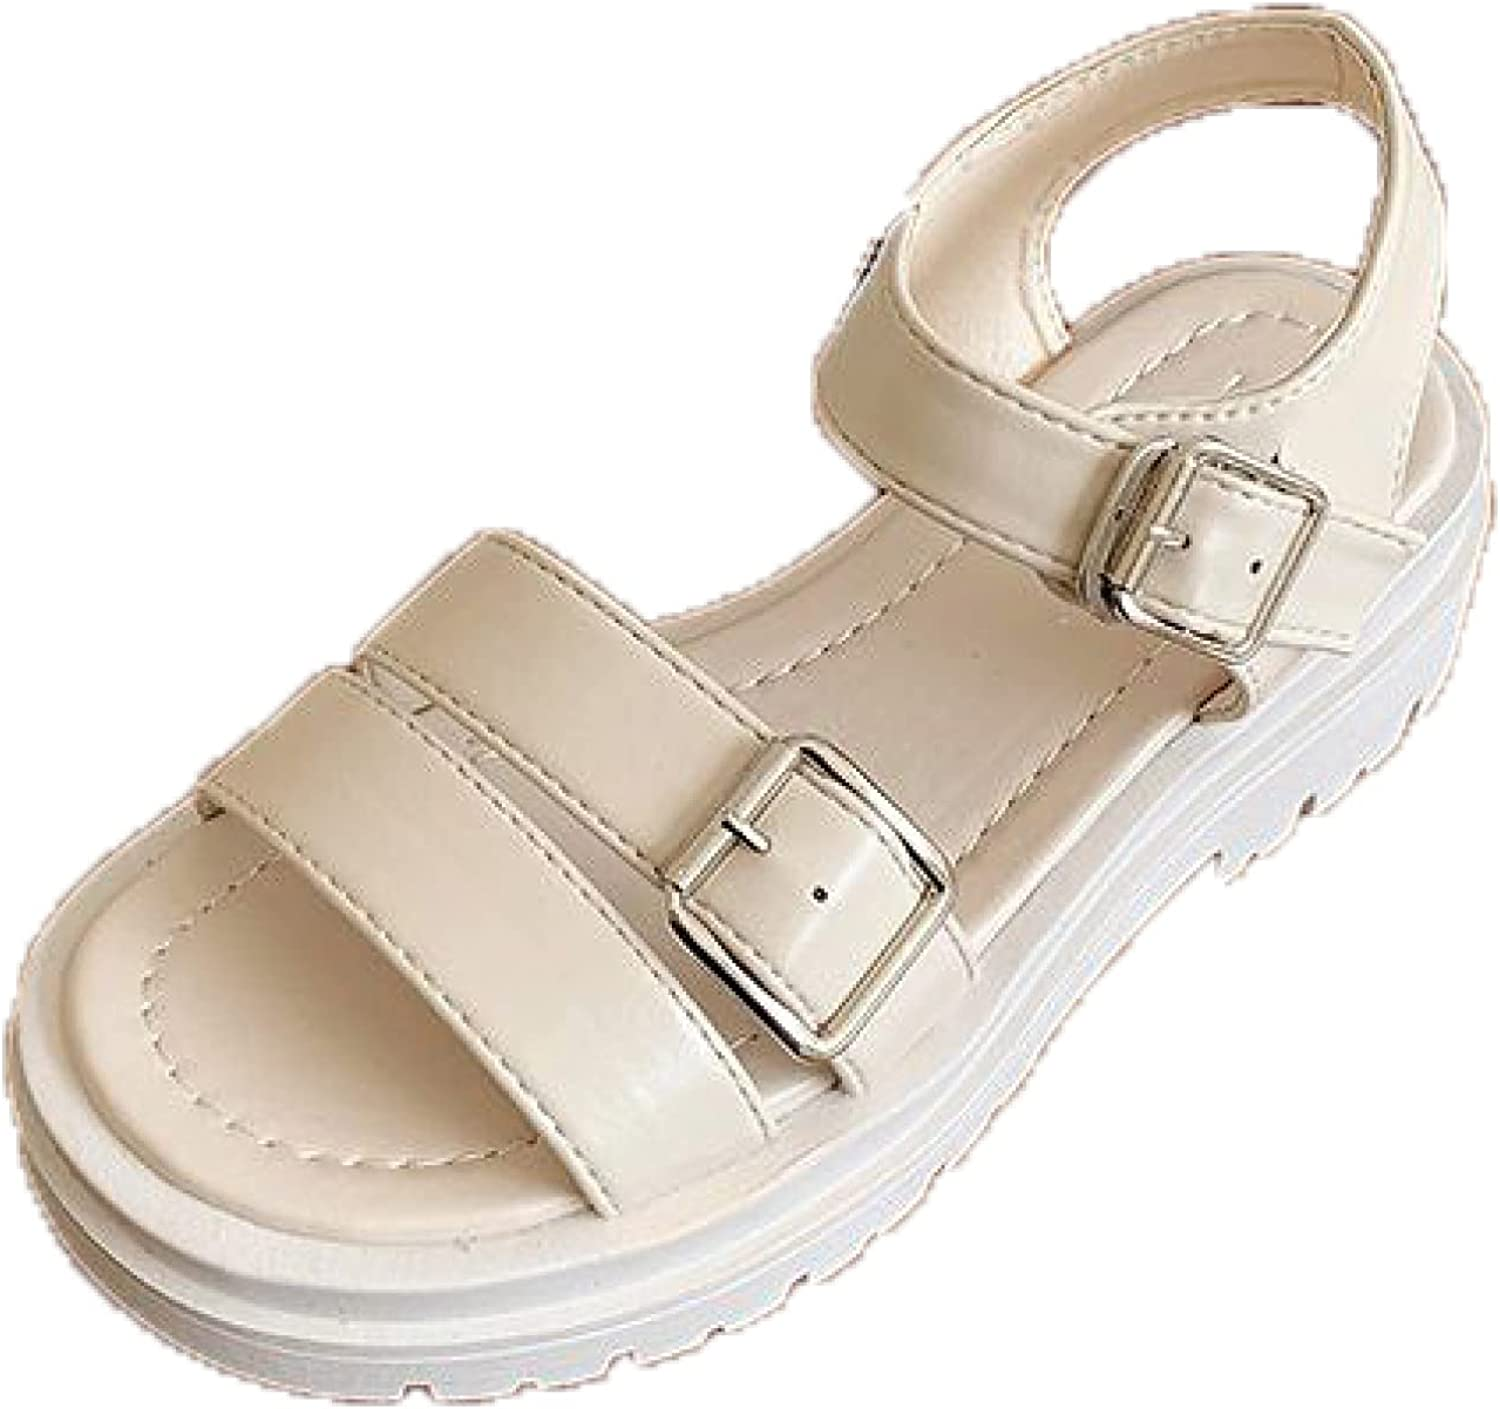 Platform Sandals for Women Dressy Summer Max 88% OFF Ank PU Clearance SALE Limited time Leather Toe Peep